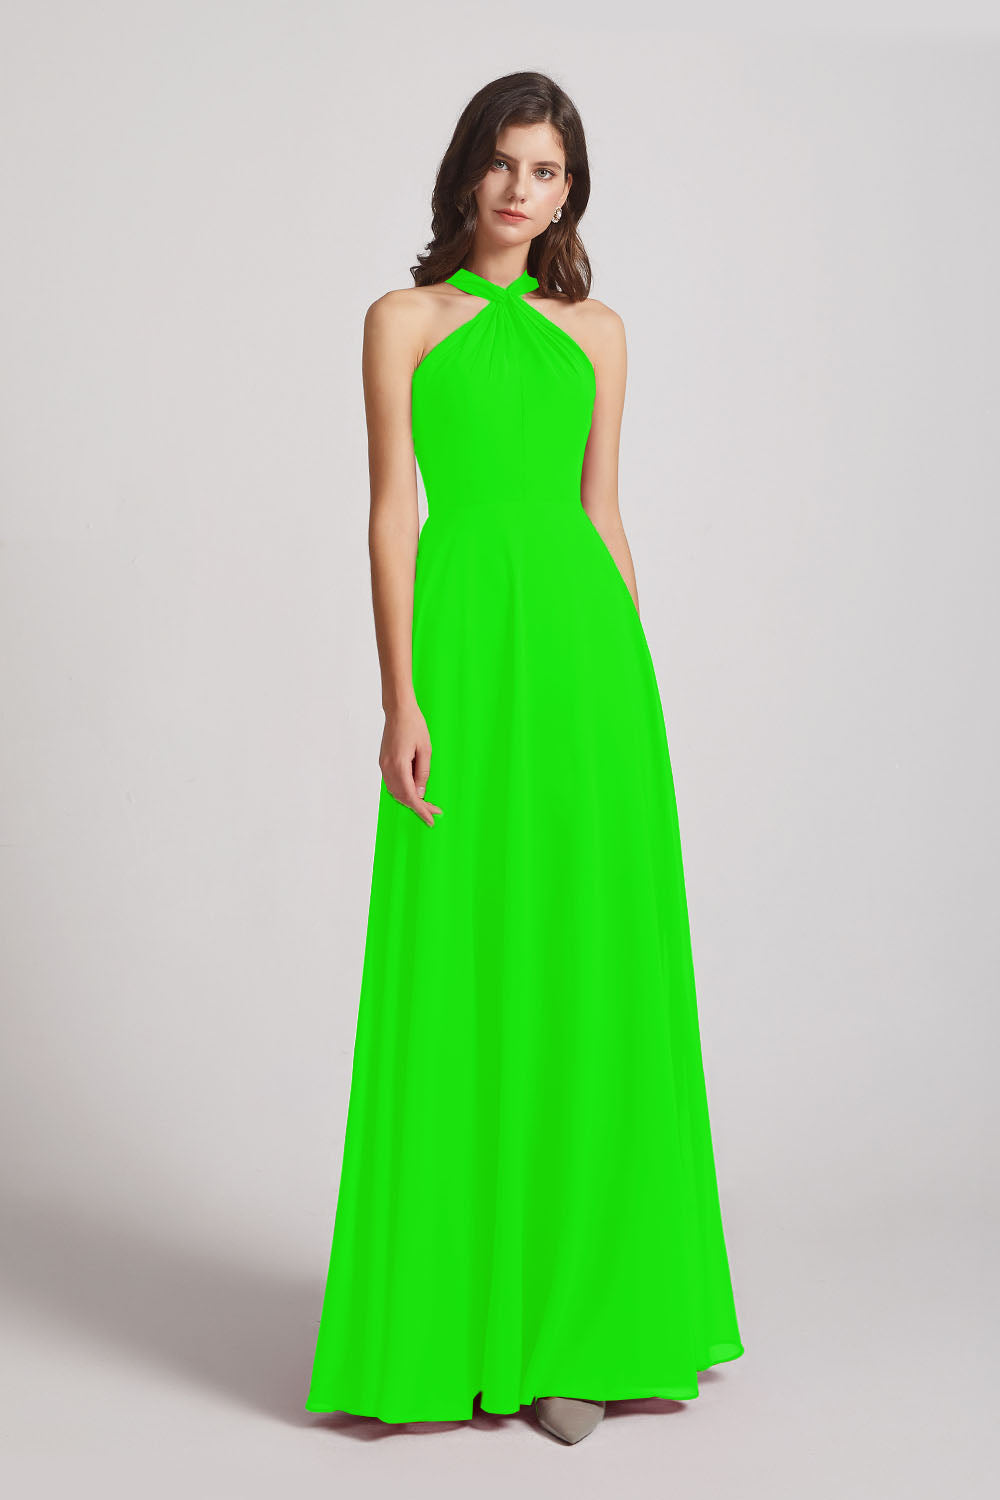 Alfa Bridal Lime Green Floor Length Chiffon Bridesmaid Dresses with Criss Cross Neckline (AF0113)